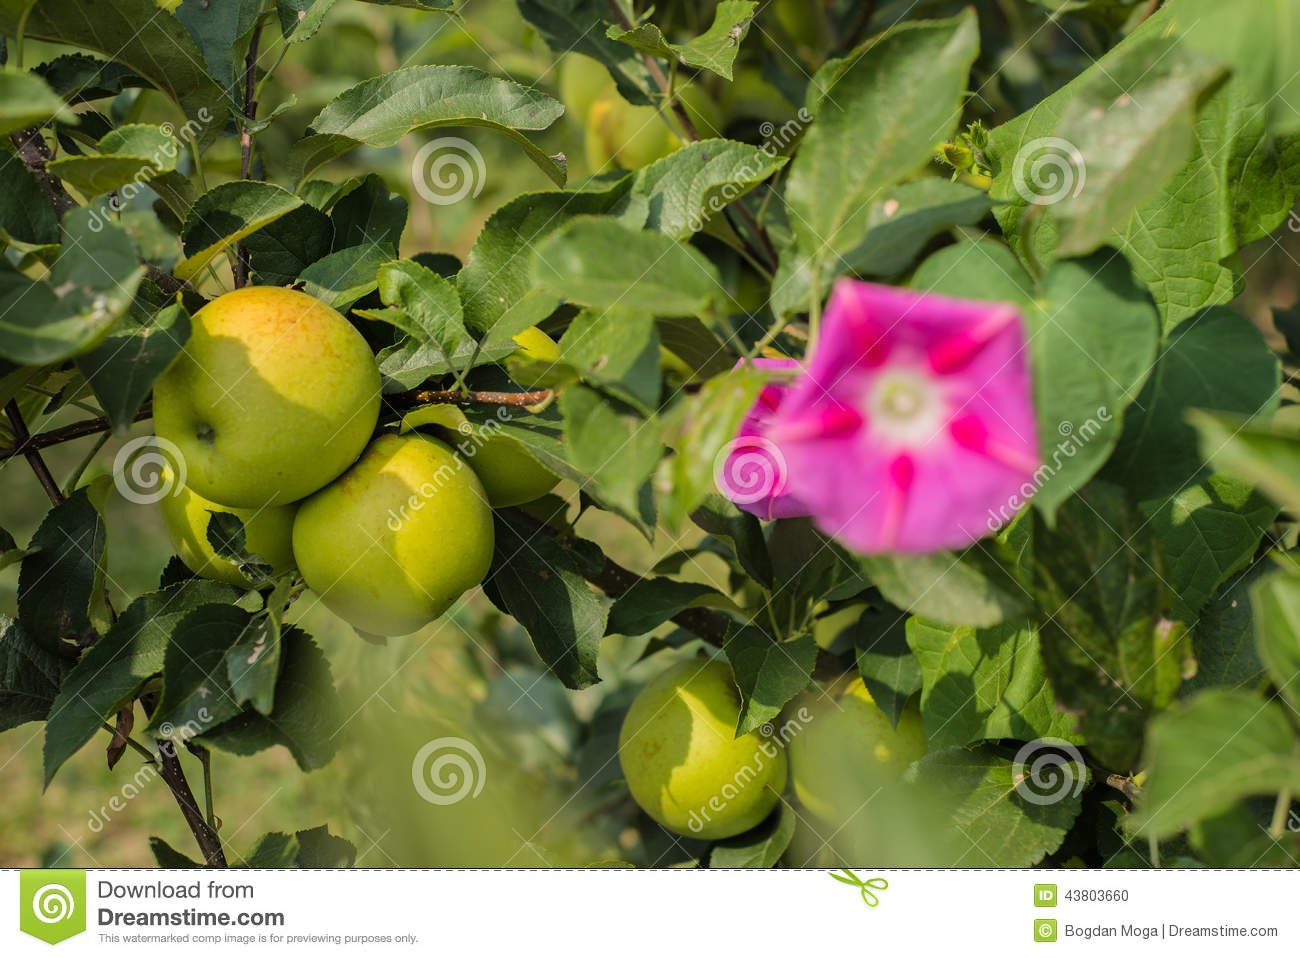 Green Apples In Apple Tree 3 Stock Photo - Image: 43803660